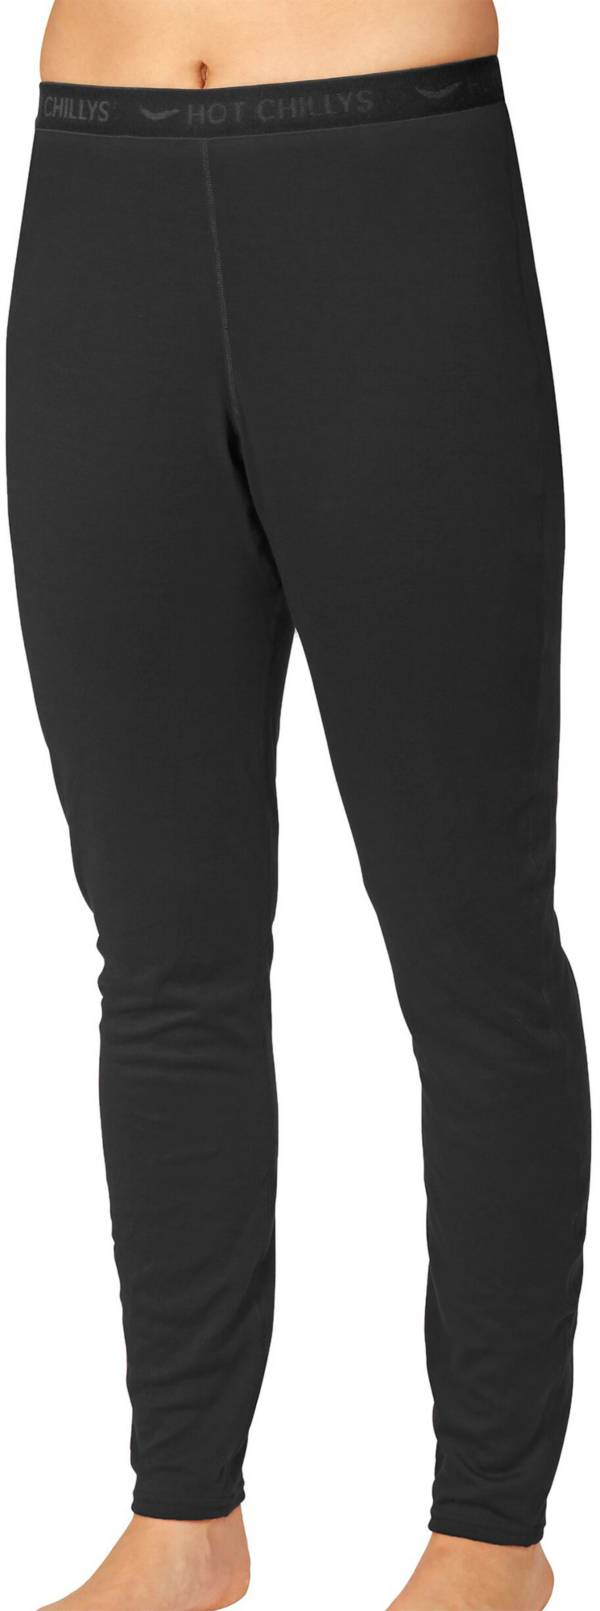 Hot Chillys Women's Pepper Bi-Ply Pants product image